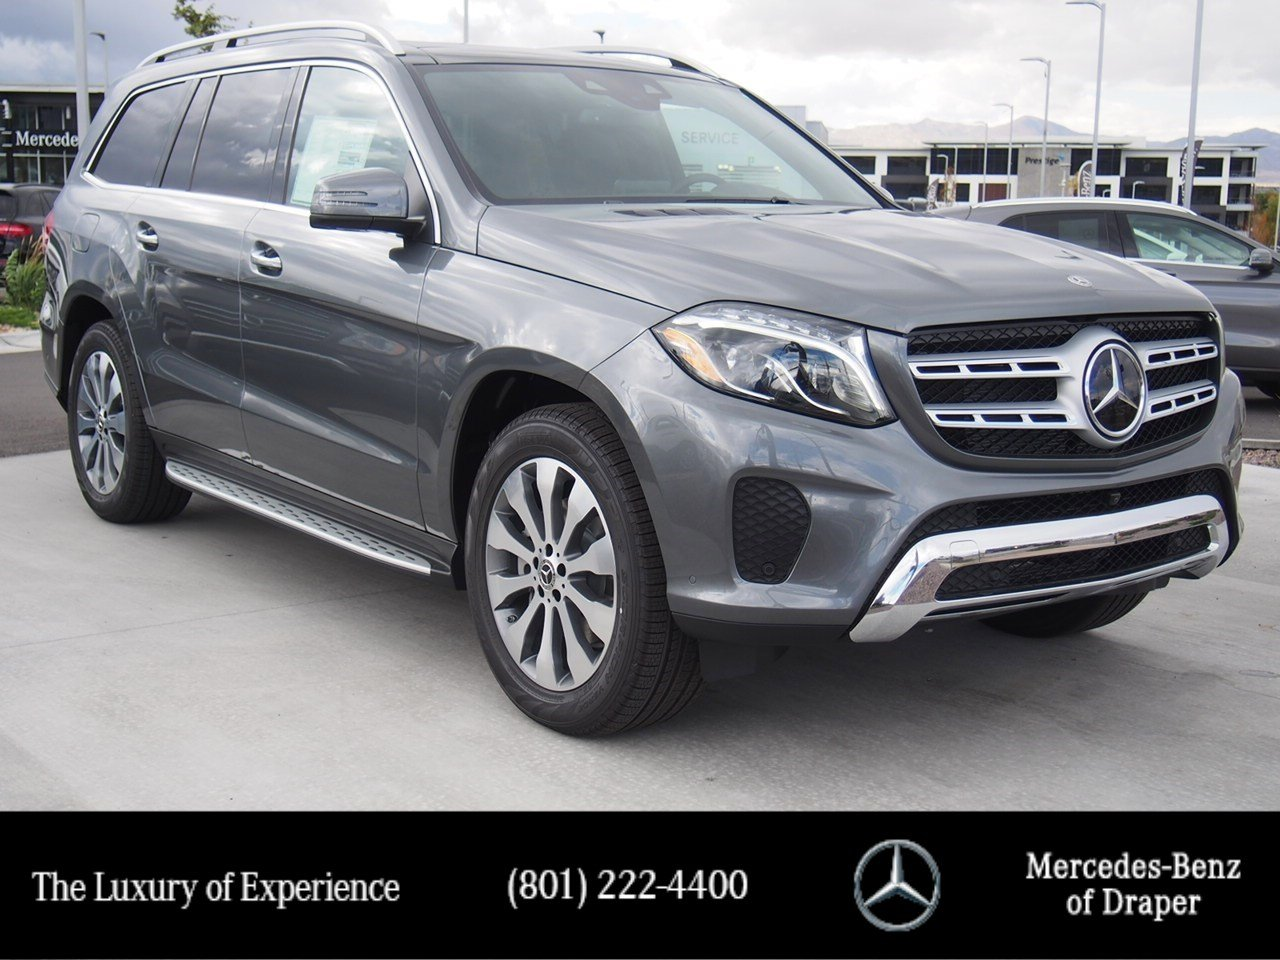 New 2019 Mercedes Benz Gls 450 4matic Suv In Draper Kb204098 C230 Panel Speaker On Wiring Harness For Trailer Hitch